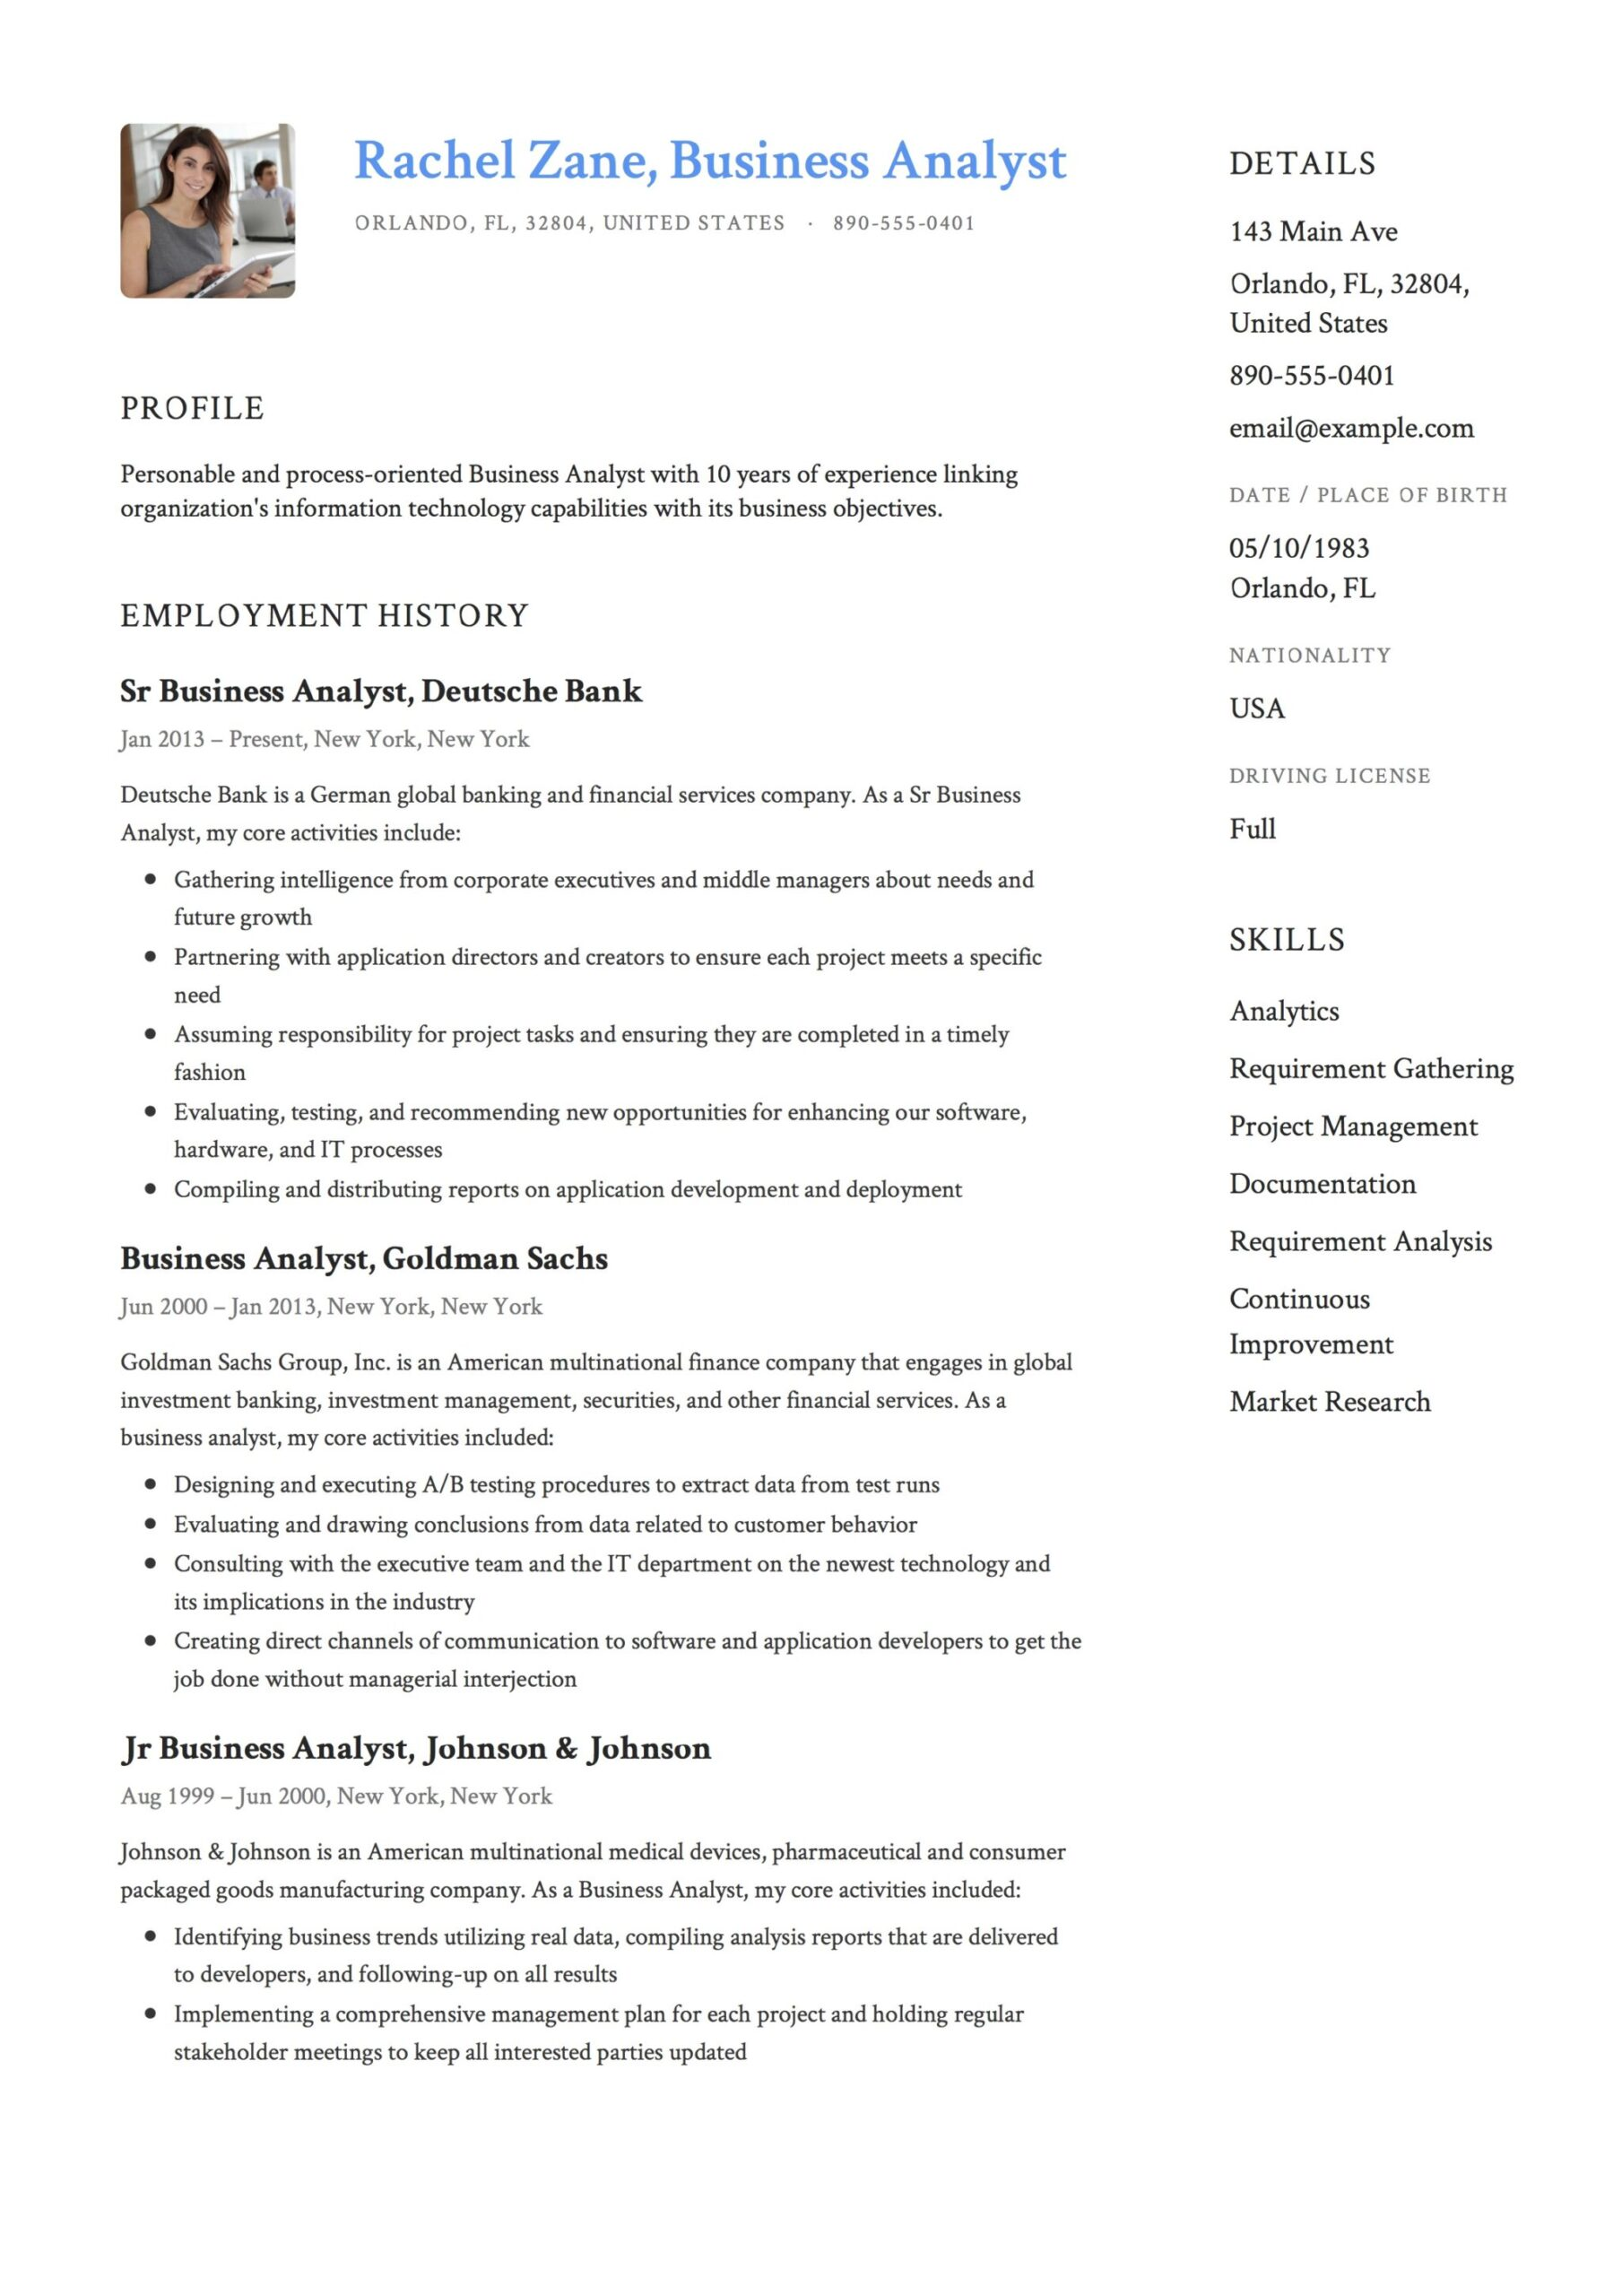 business analyst resume guide templates pdf free downloads template volunteer section on Resume Business Analyst Resume Download